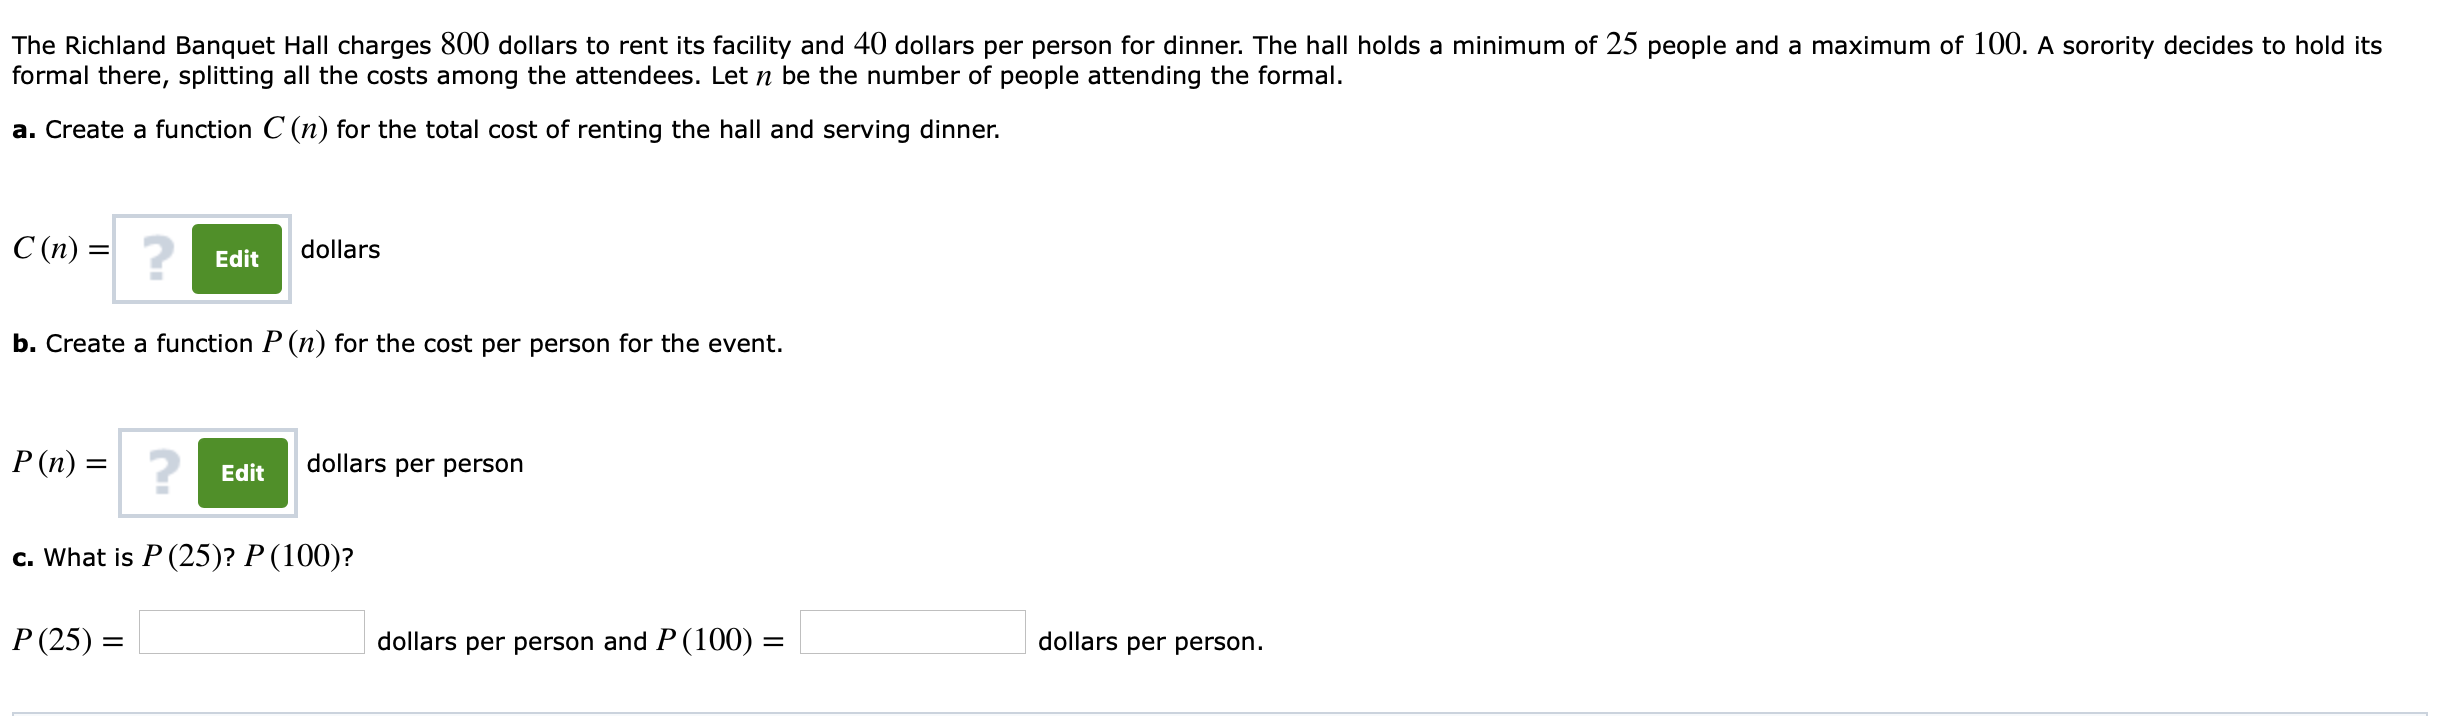 The Richland Banquet Hall charges 800 dollars to rent its facility and 40 dollars per person for dinner. The hall holds a minimum of 25 people and a maximum of 100. A sorority decides to hold its formal there, splitting all the costs among the attendees. Let n be the number of people attending the formal. a. Create a function C (n) for the total cost of renting the hall and serving dinner. C(n) = 2 dollars Edit b. Create a function P(n) for the cost per person for the event. dollars per person Edit c. What is P (25)? P (100)? P(25) dollars per person and P (100)- dollars per person